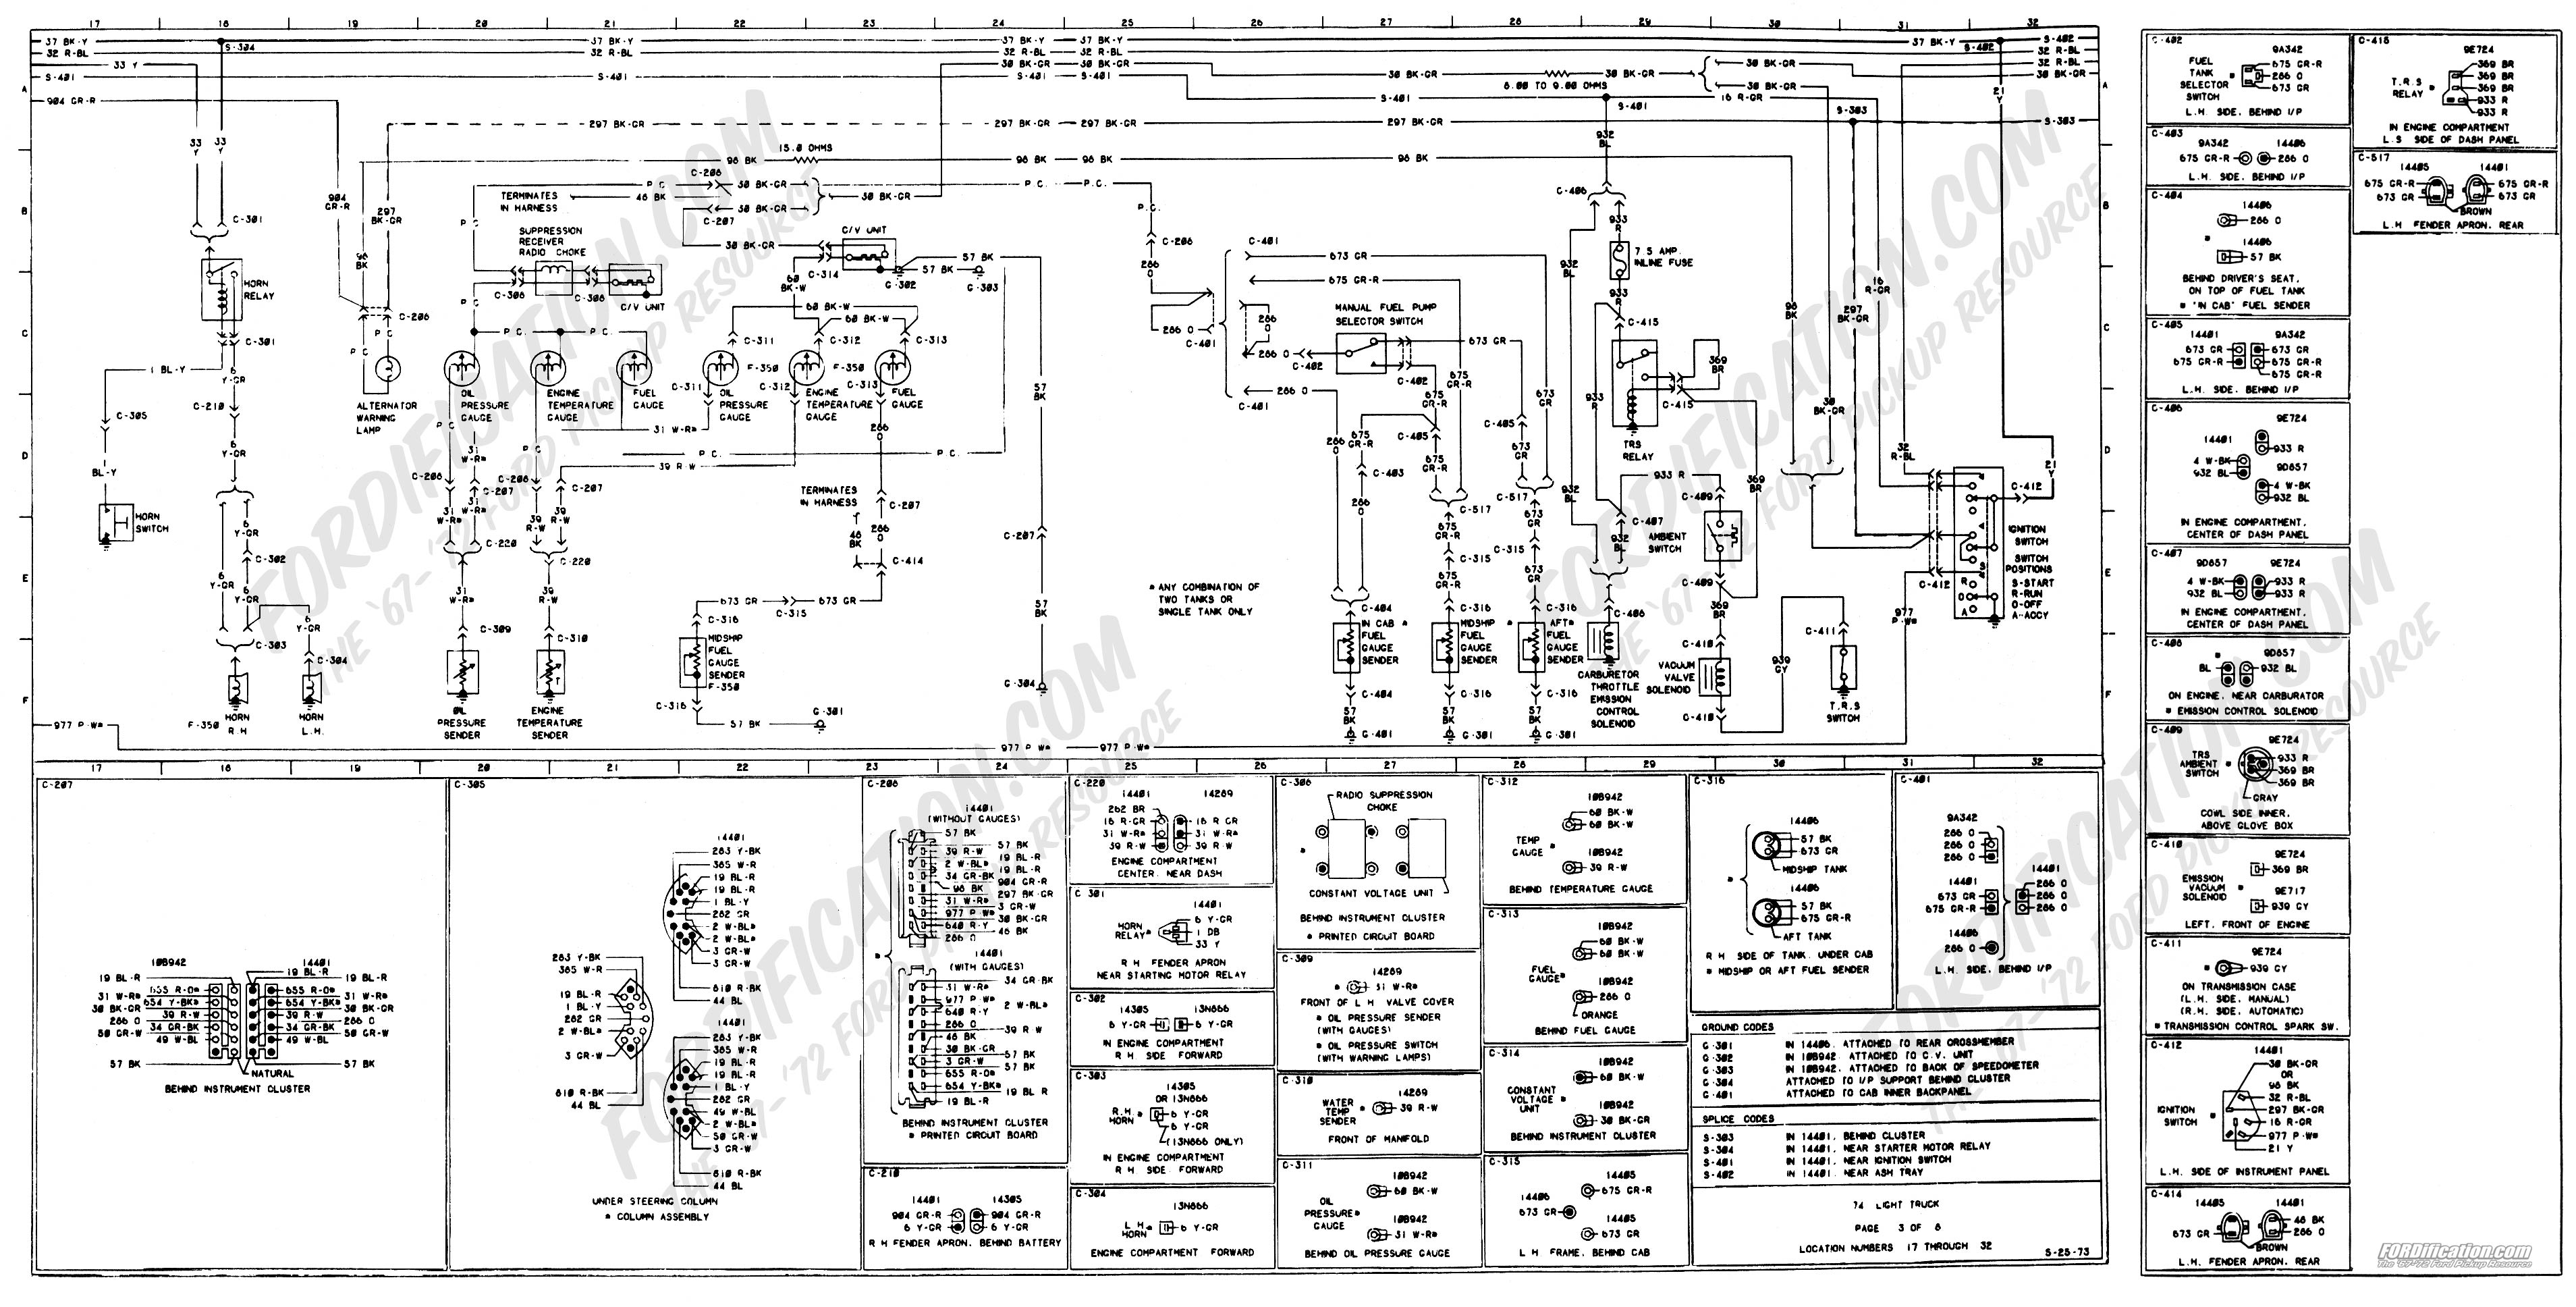 wiring_74master_3of8 1973 1979 ford truck wiring diagrams & schematics fordification net 99 sterling truck wiring diagram at pacquiaovsvargaslive.co